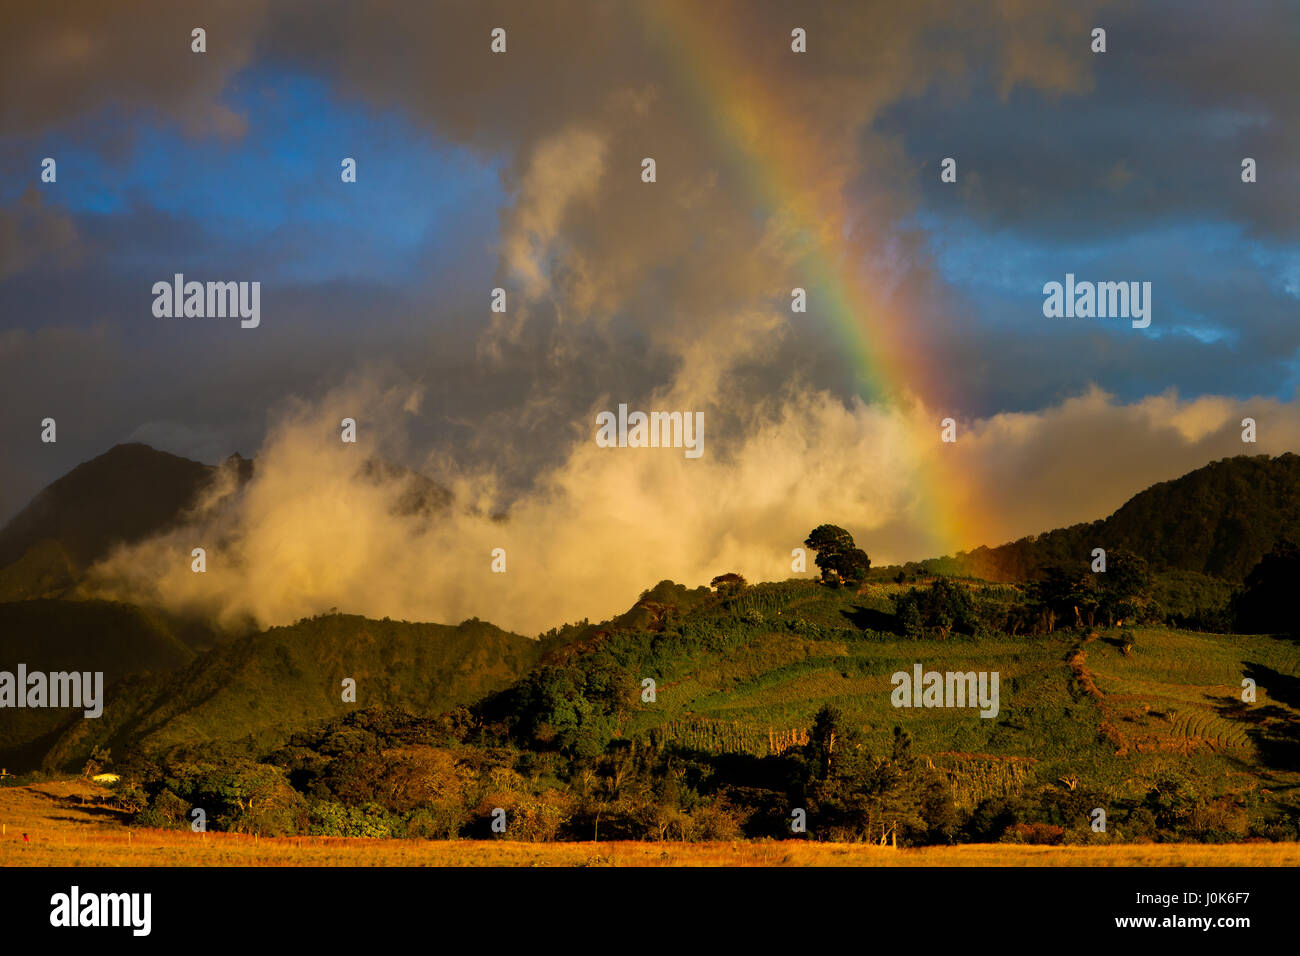 Rainbow at sunset in Volcan Baru National Park, Chiriqui province, Republic of Panama. - Stock Image